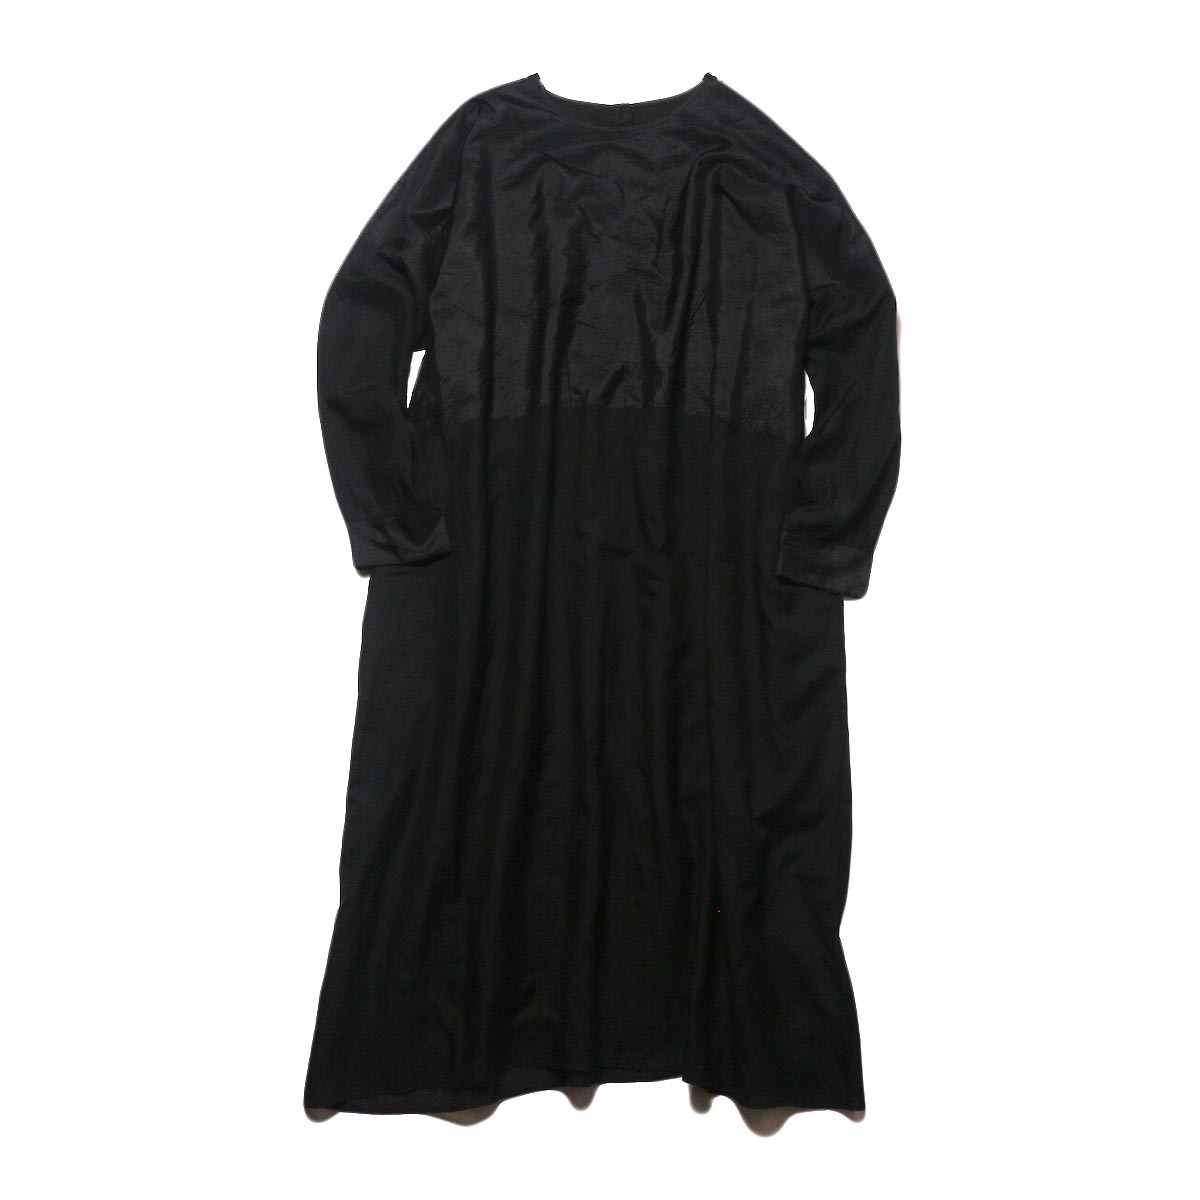 maison de soil / HAND WOVEN COTTON SILK × SILK PLAIN DROP SHOULDER DRESS (black) 正面